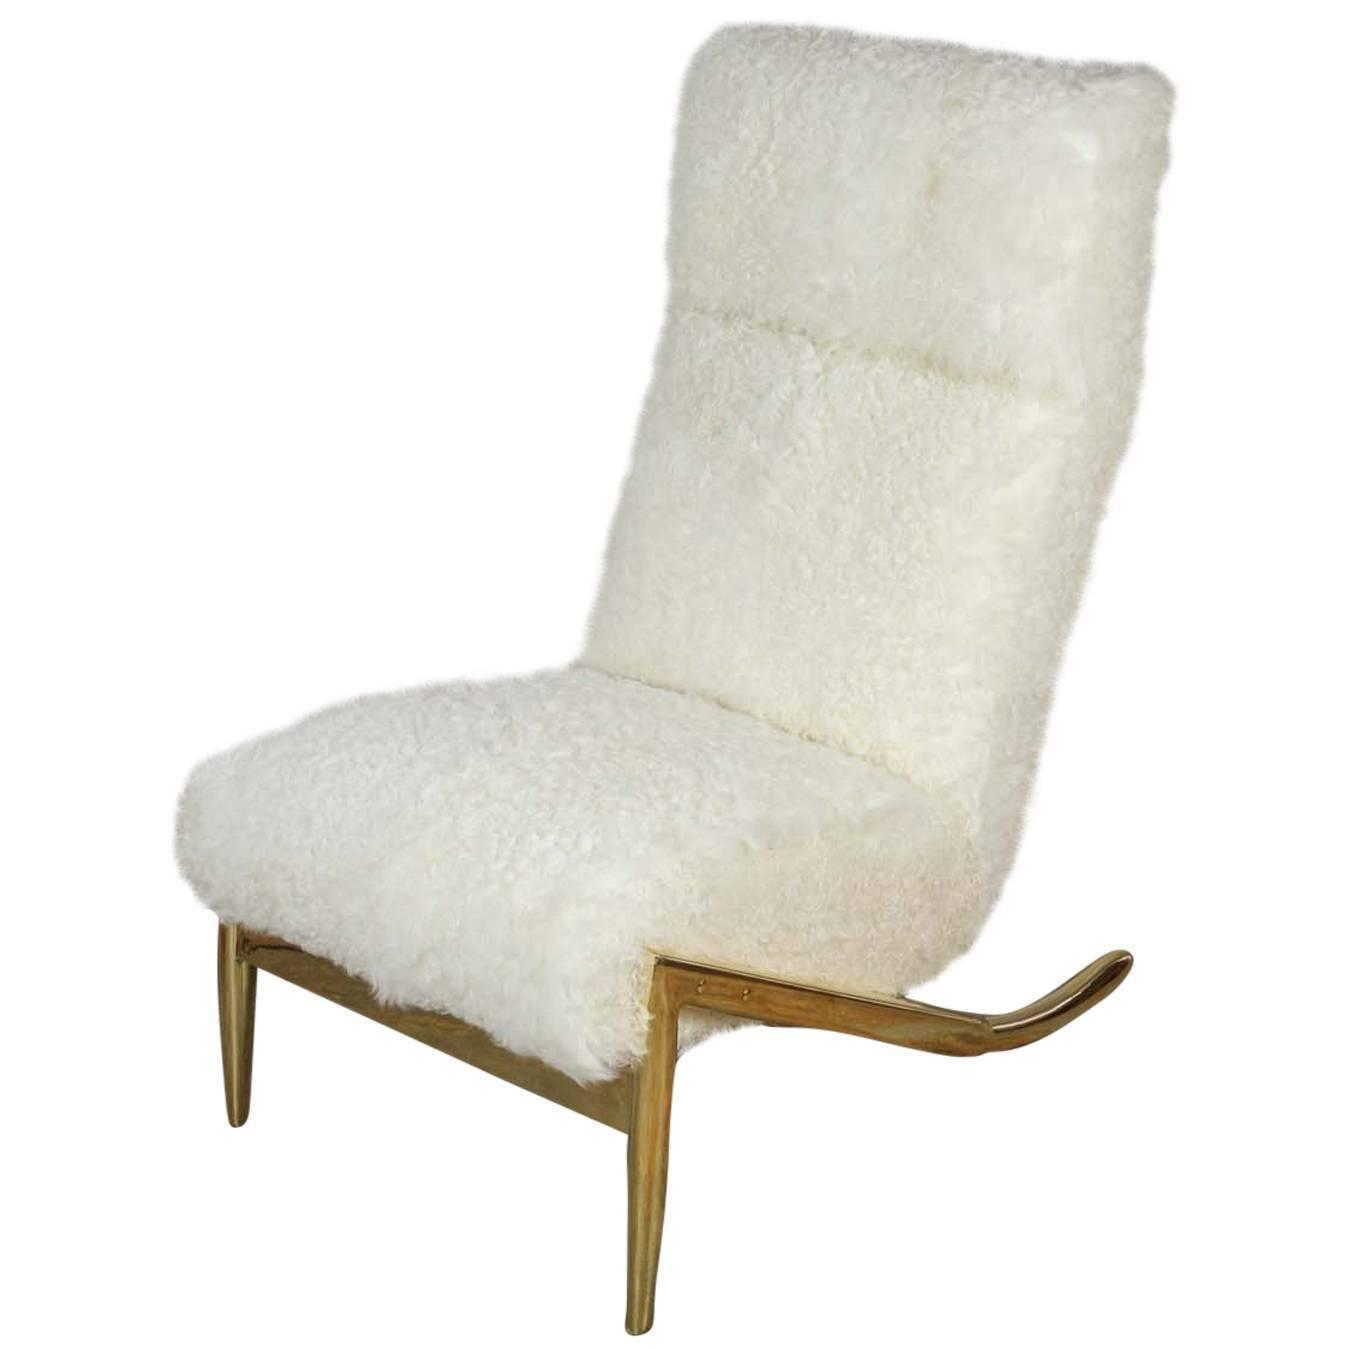 chairs channel classical chair decoration concept furniture comfortable slipper